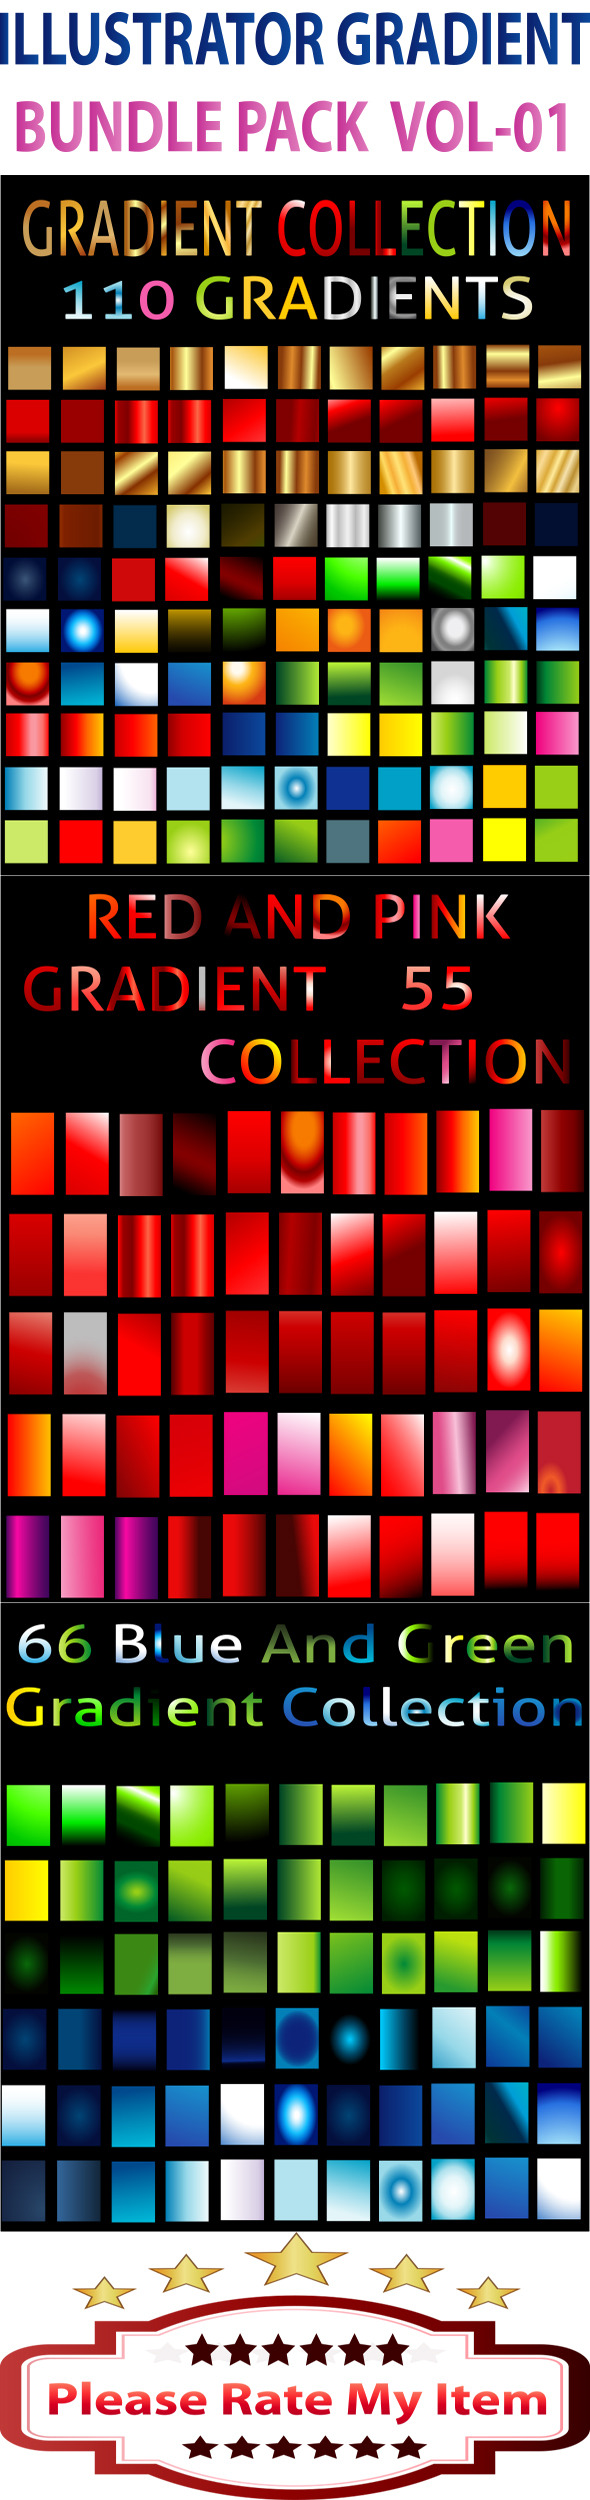 Illustrator Gradient Bundle Pack Vol-1